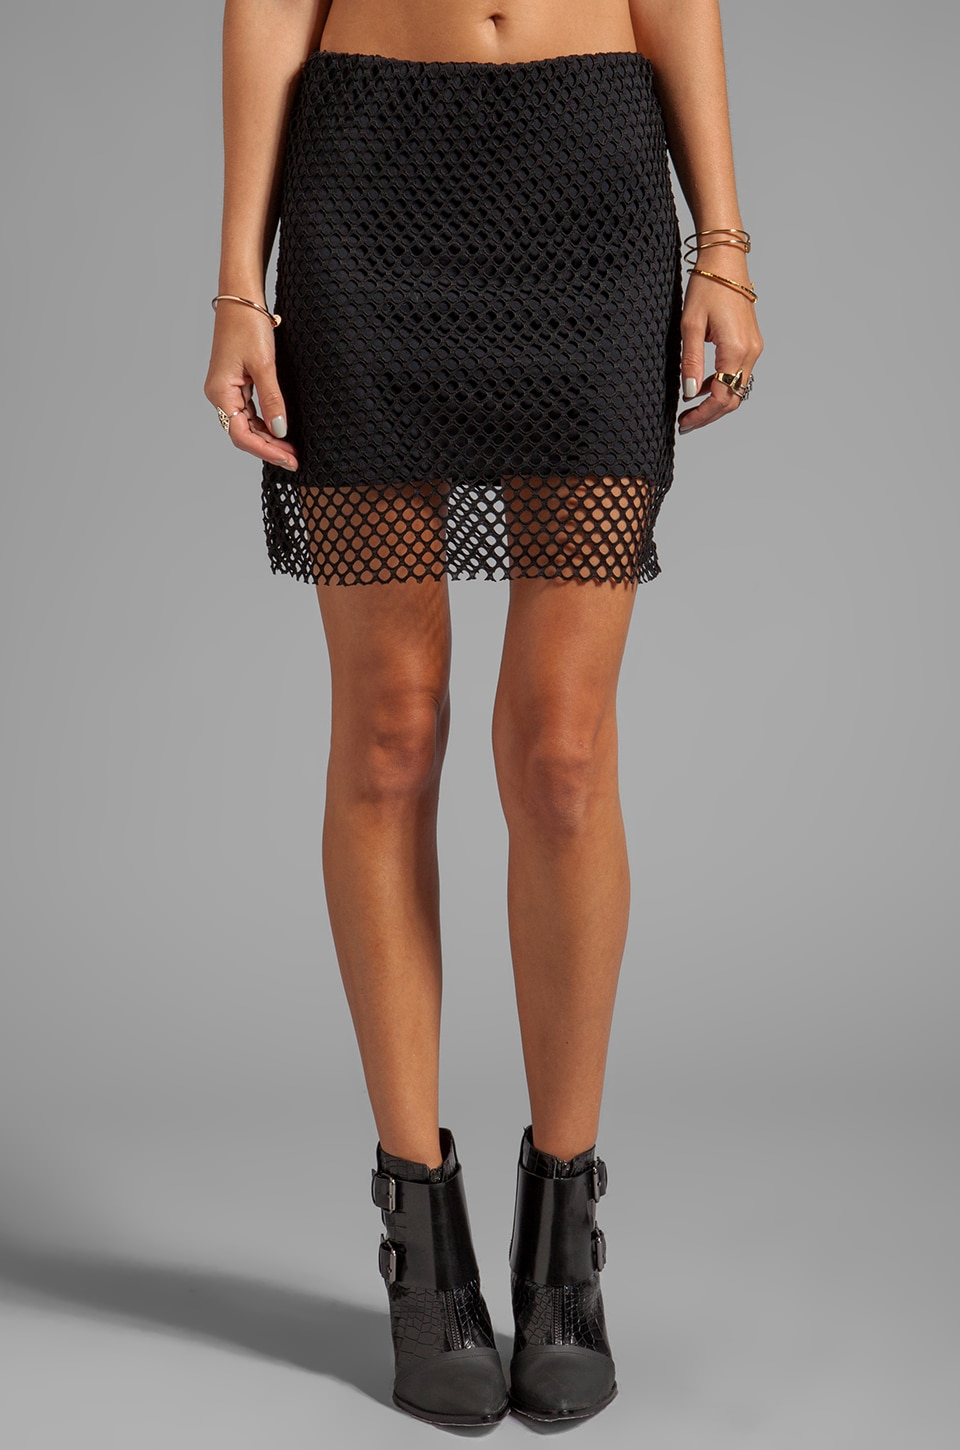 Cheap Monday Pixie Skirt in Black